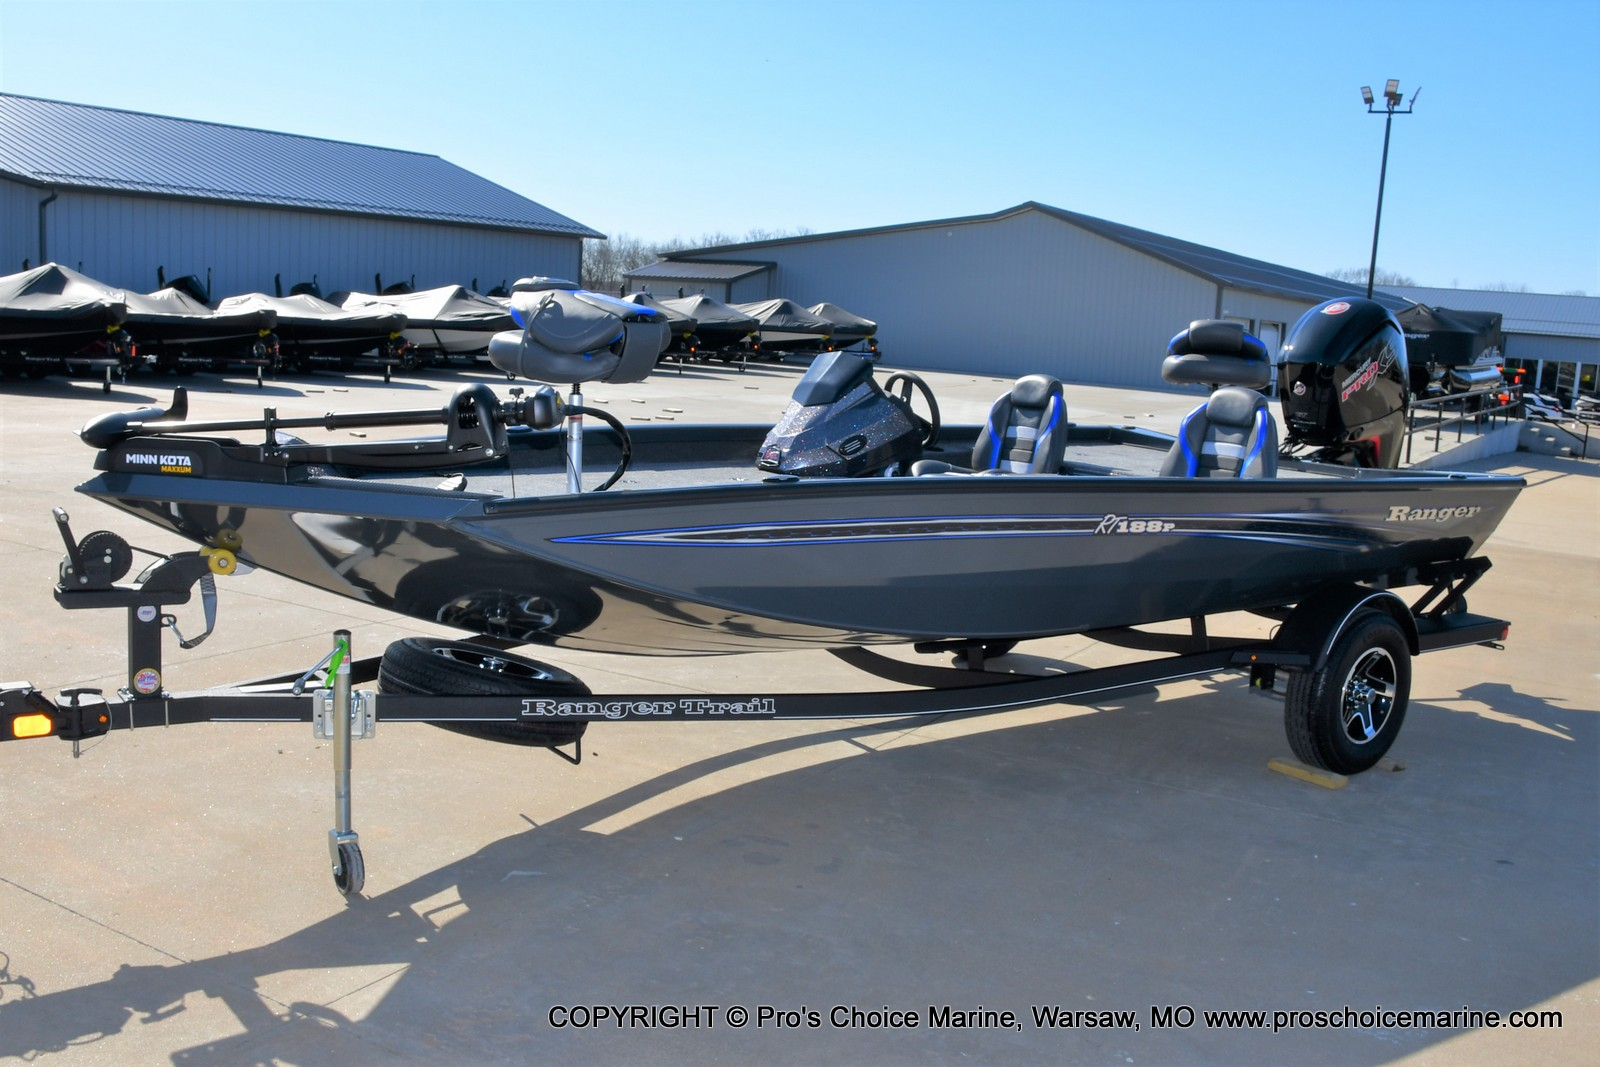 2021 Ranger Boats boat for sale, model of the boat is RT188P w/115HP Pro-XS CT & COIN BOX & Image # 37 of 50